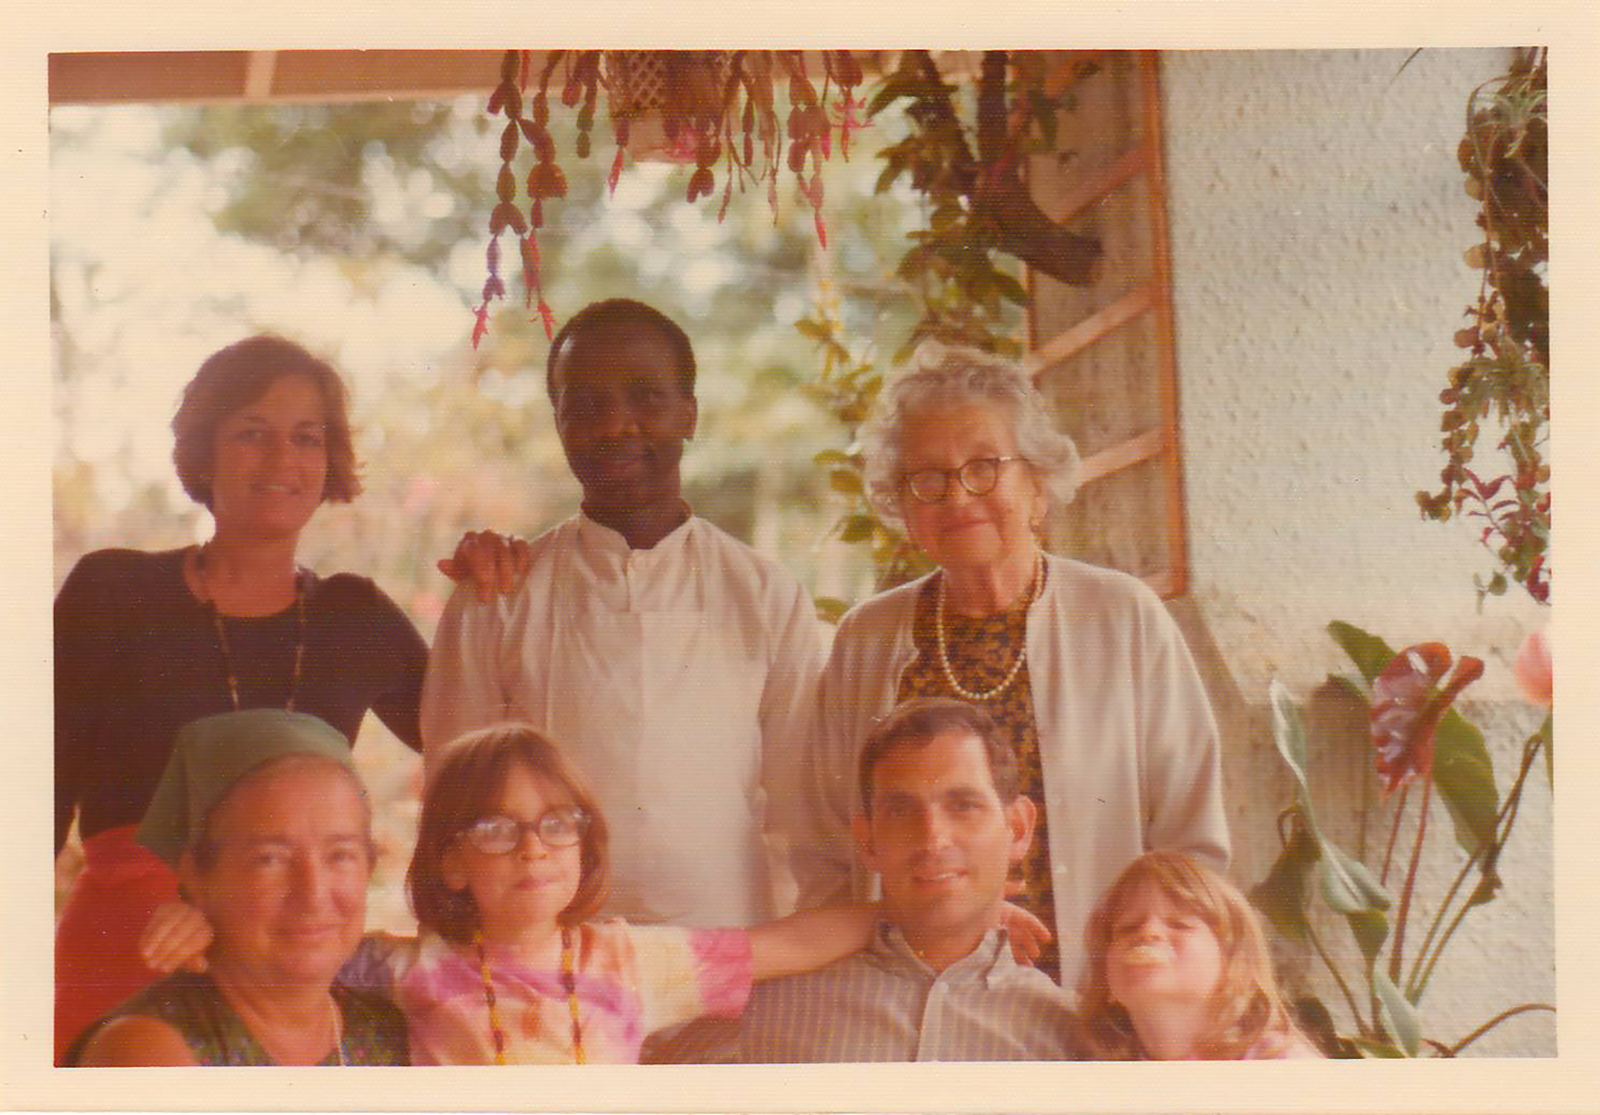 Tana Senn's family in Kenya. Top row, left to right: Eve Senn (mother), Lazaro, Selma Liebschutz (great-grandmother). Bottom row: Lisa Rozsa (grandmother), Mara Senn (sister), Dick Senn (father), Tana.